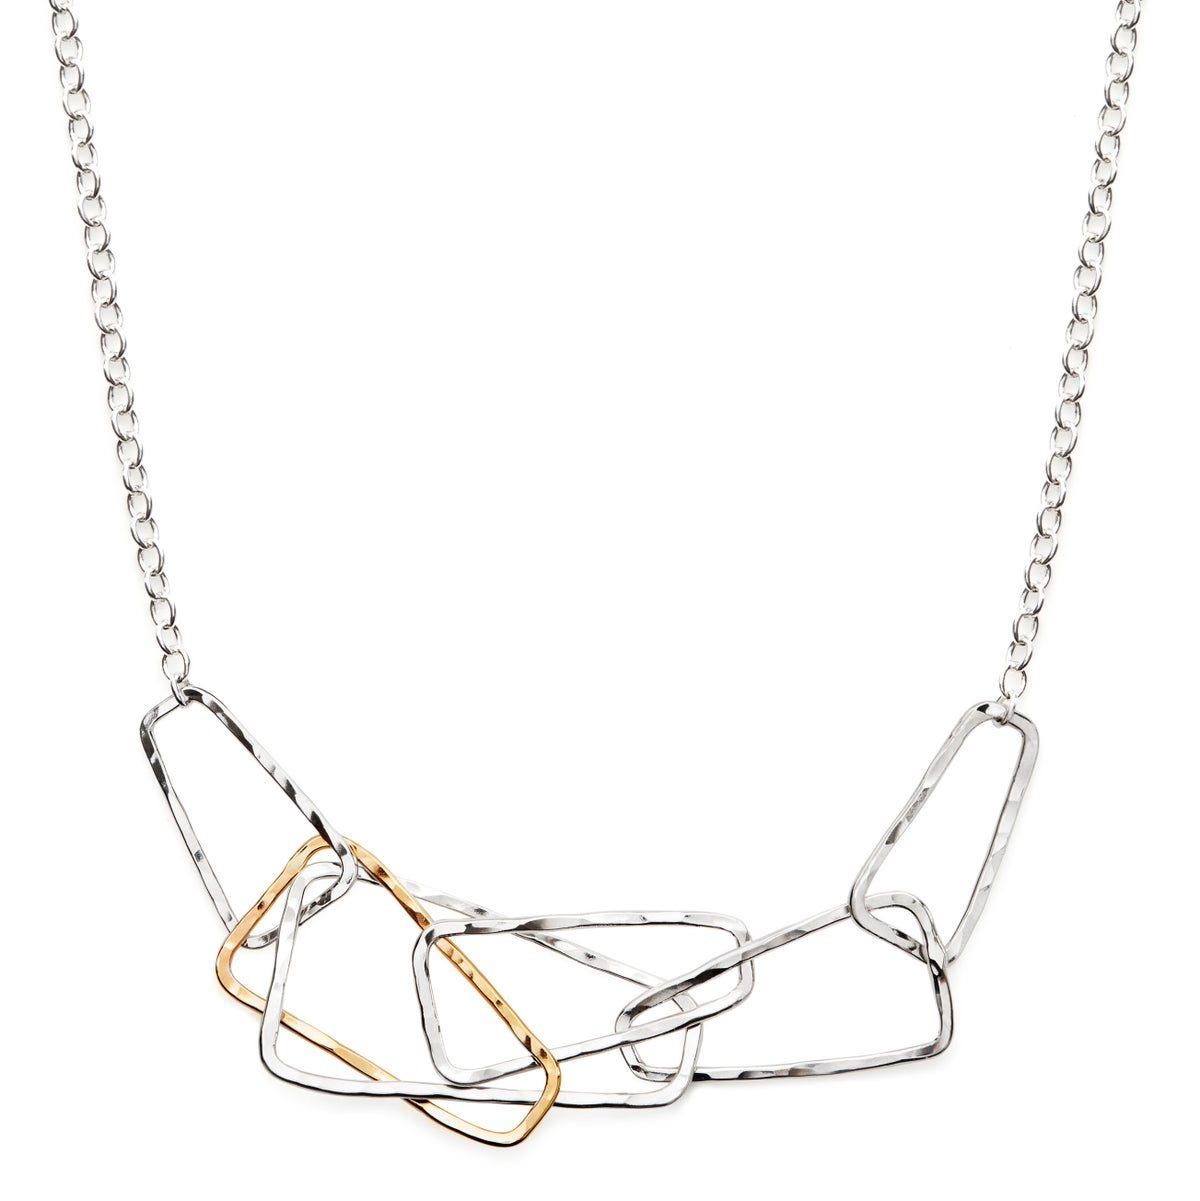 Image of Dappled sunlight necklace